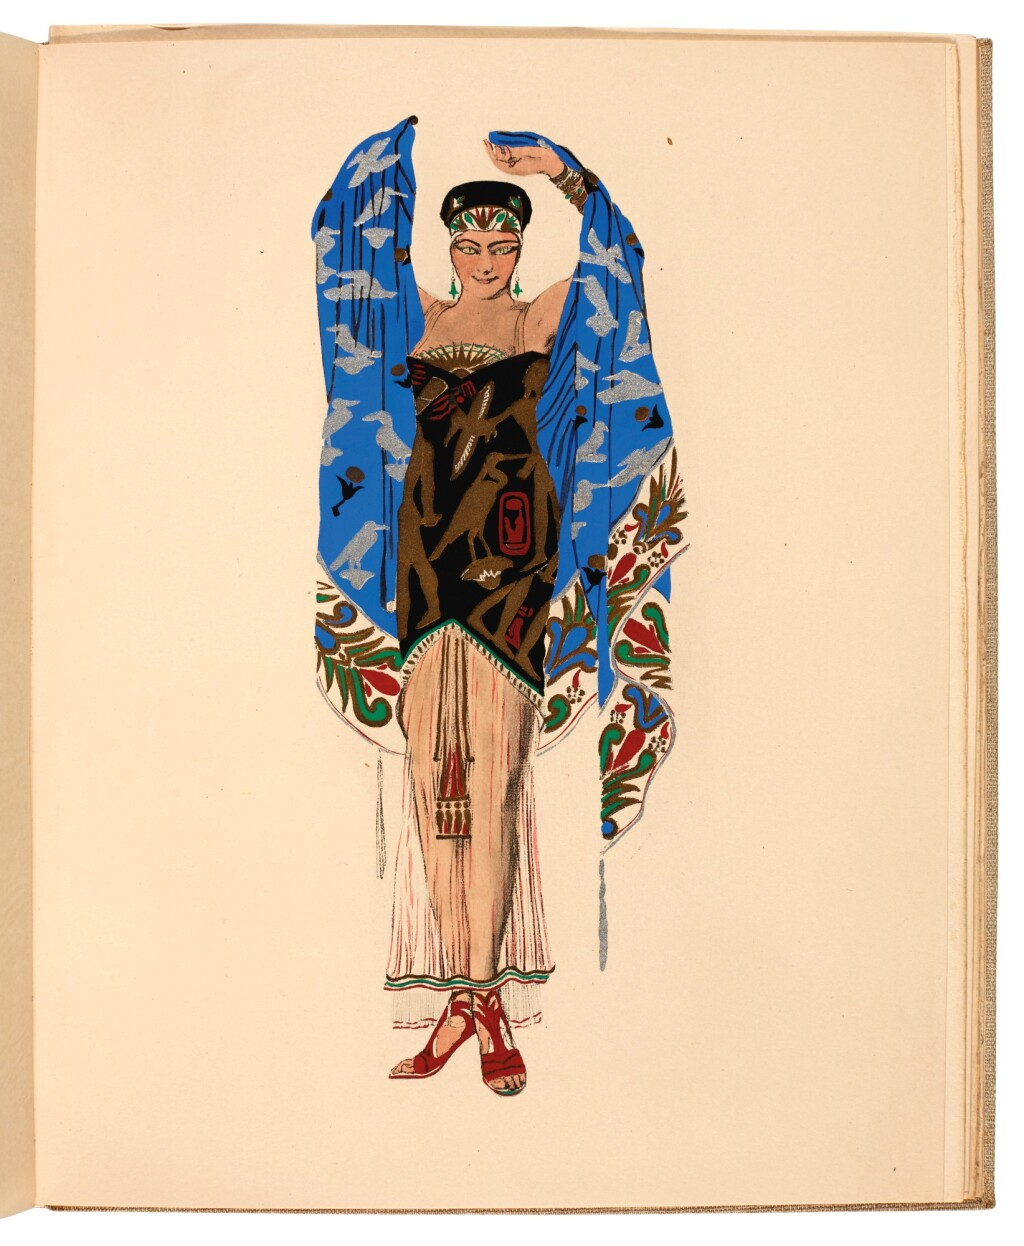 BAKST, LÉON | TWO VOLUMES ABOUT HIS LIFE AND WORK, AMERICAN EDITIONS, COMPRISING: